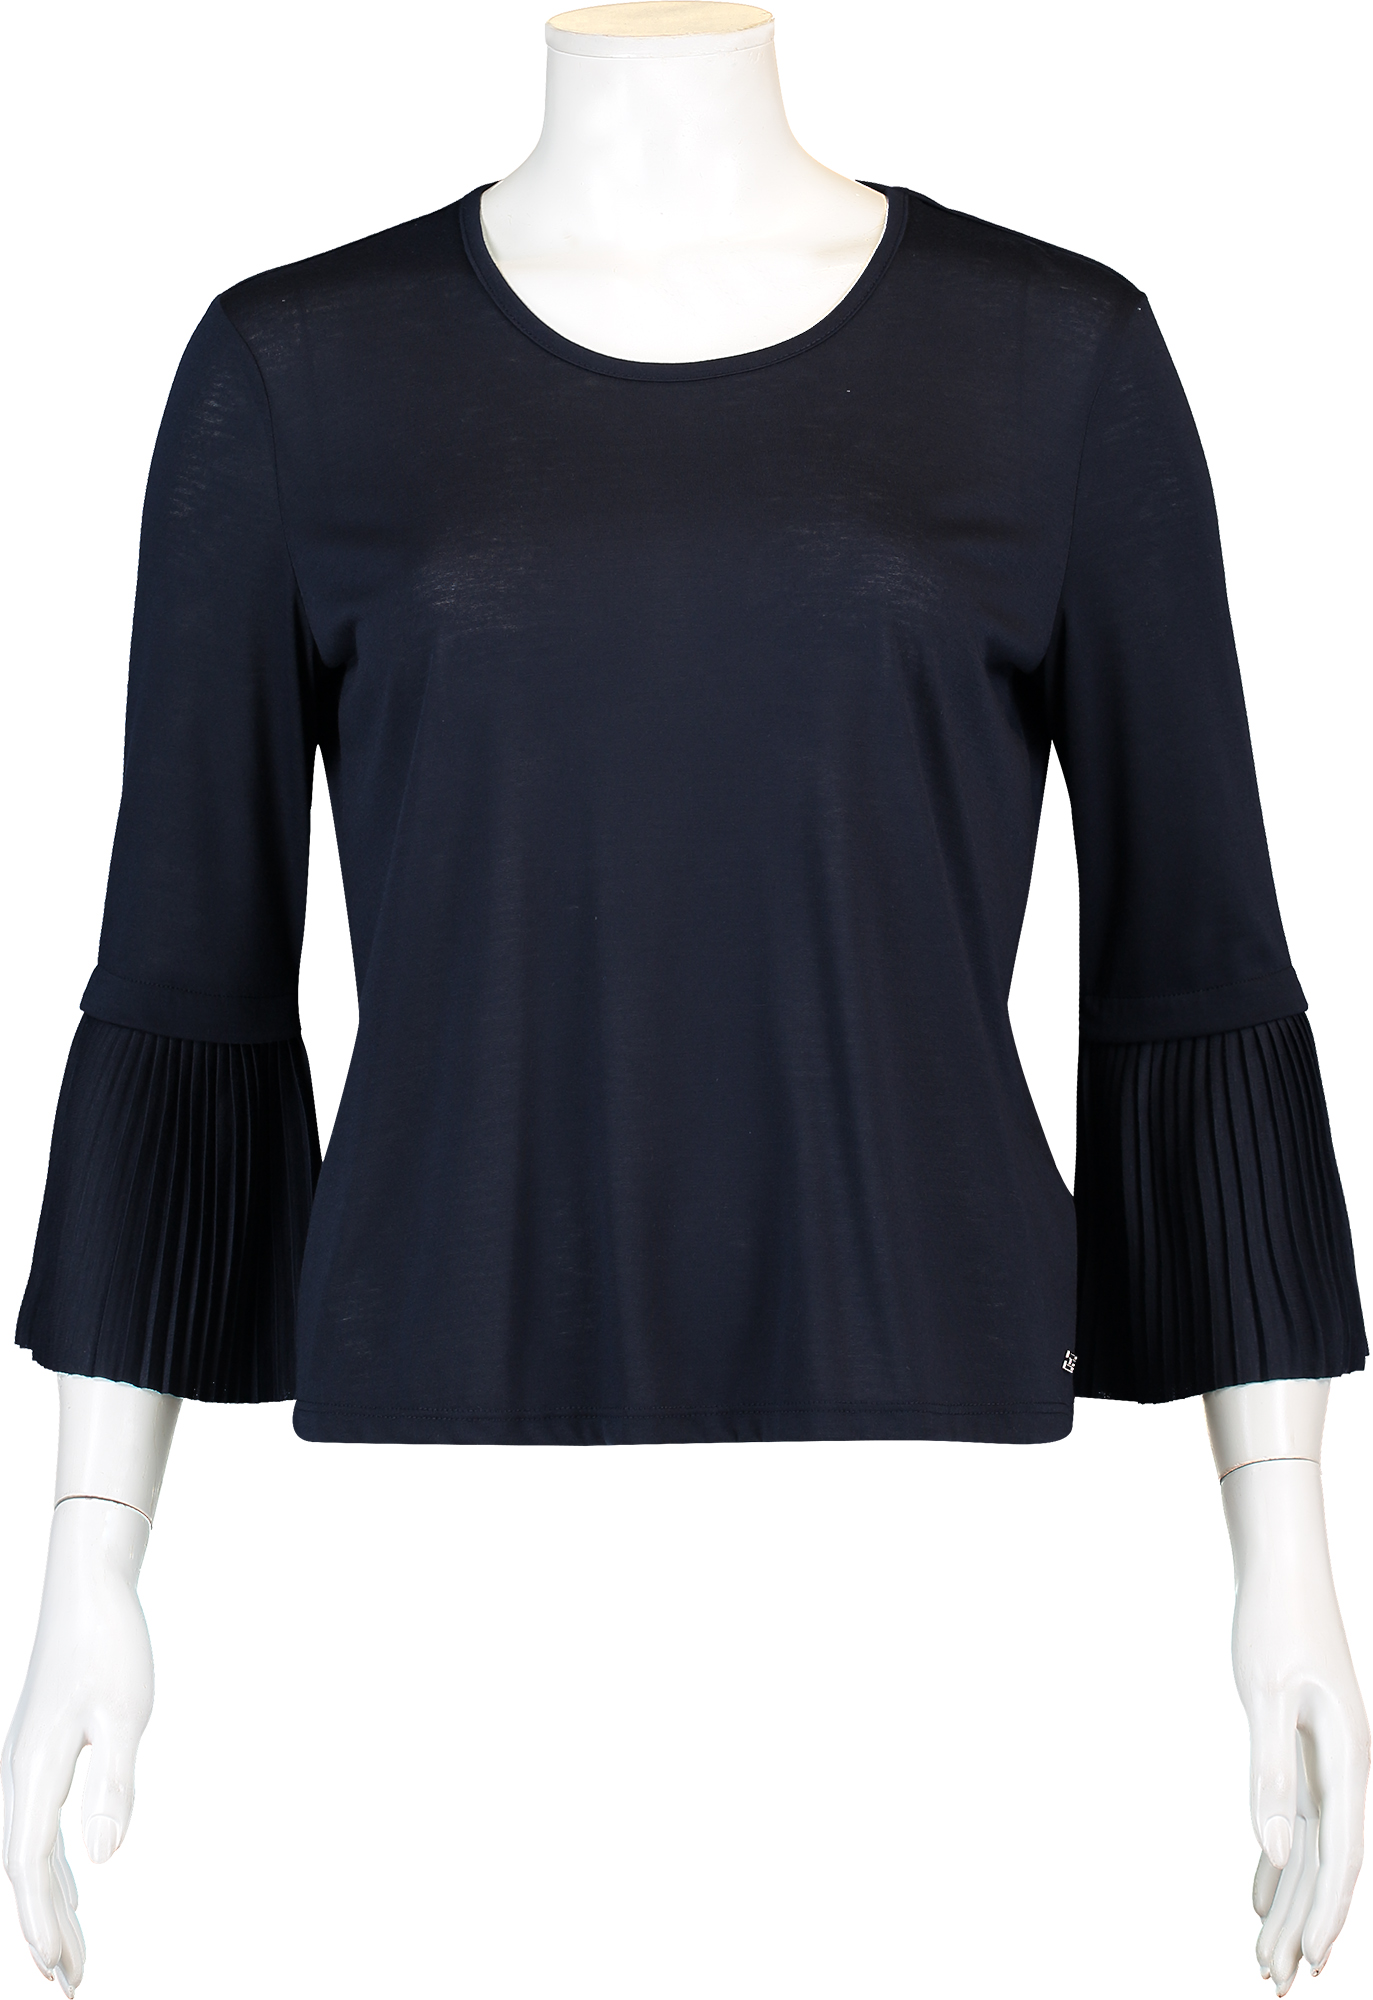 Piet Zoomers Tommy Hilfiger dames top